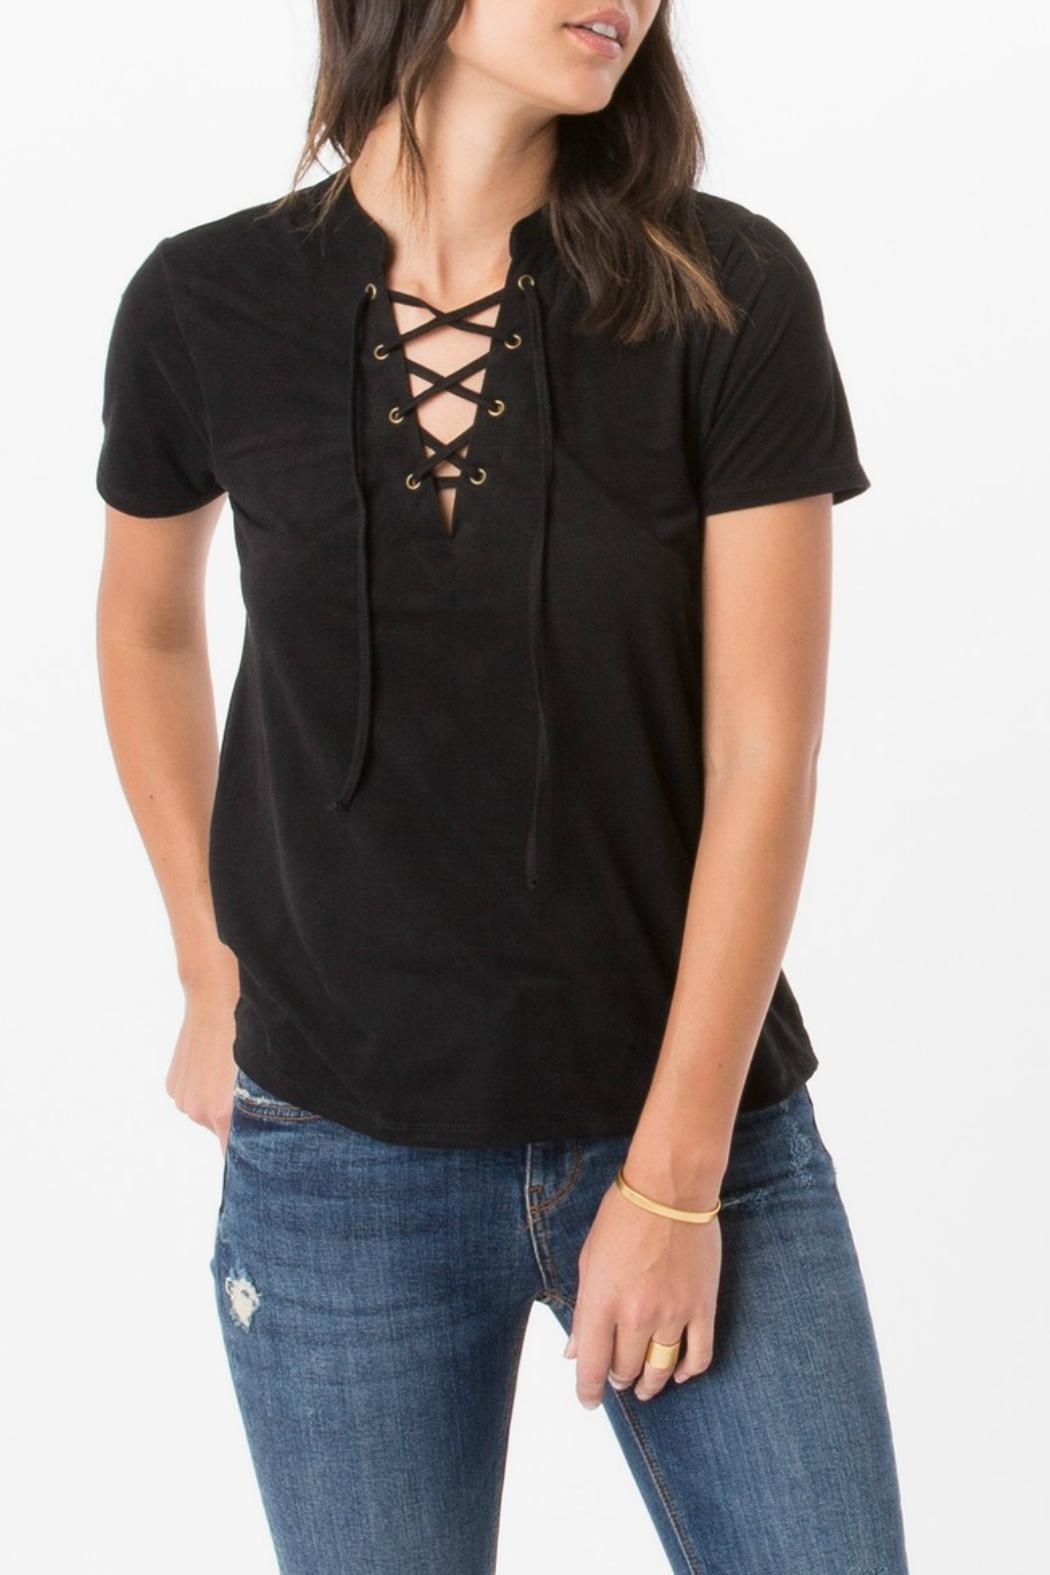 z supply Suede Lace Up Top - Main Image